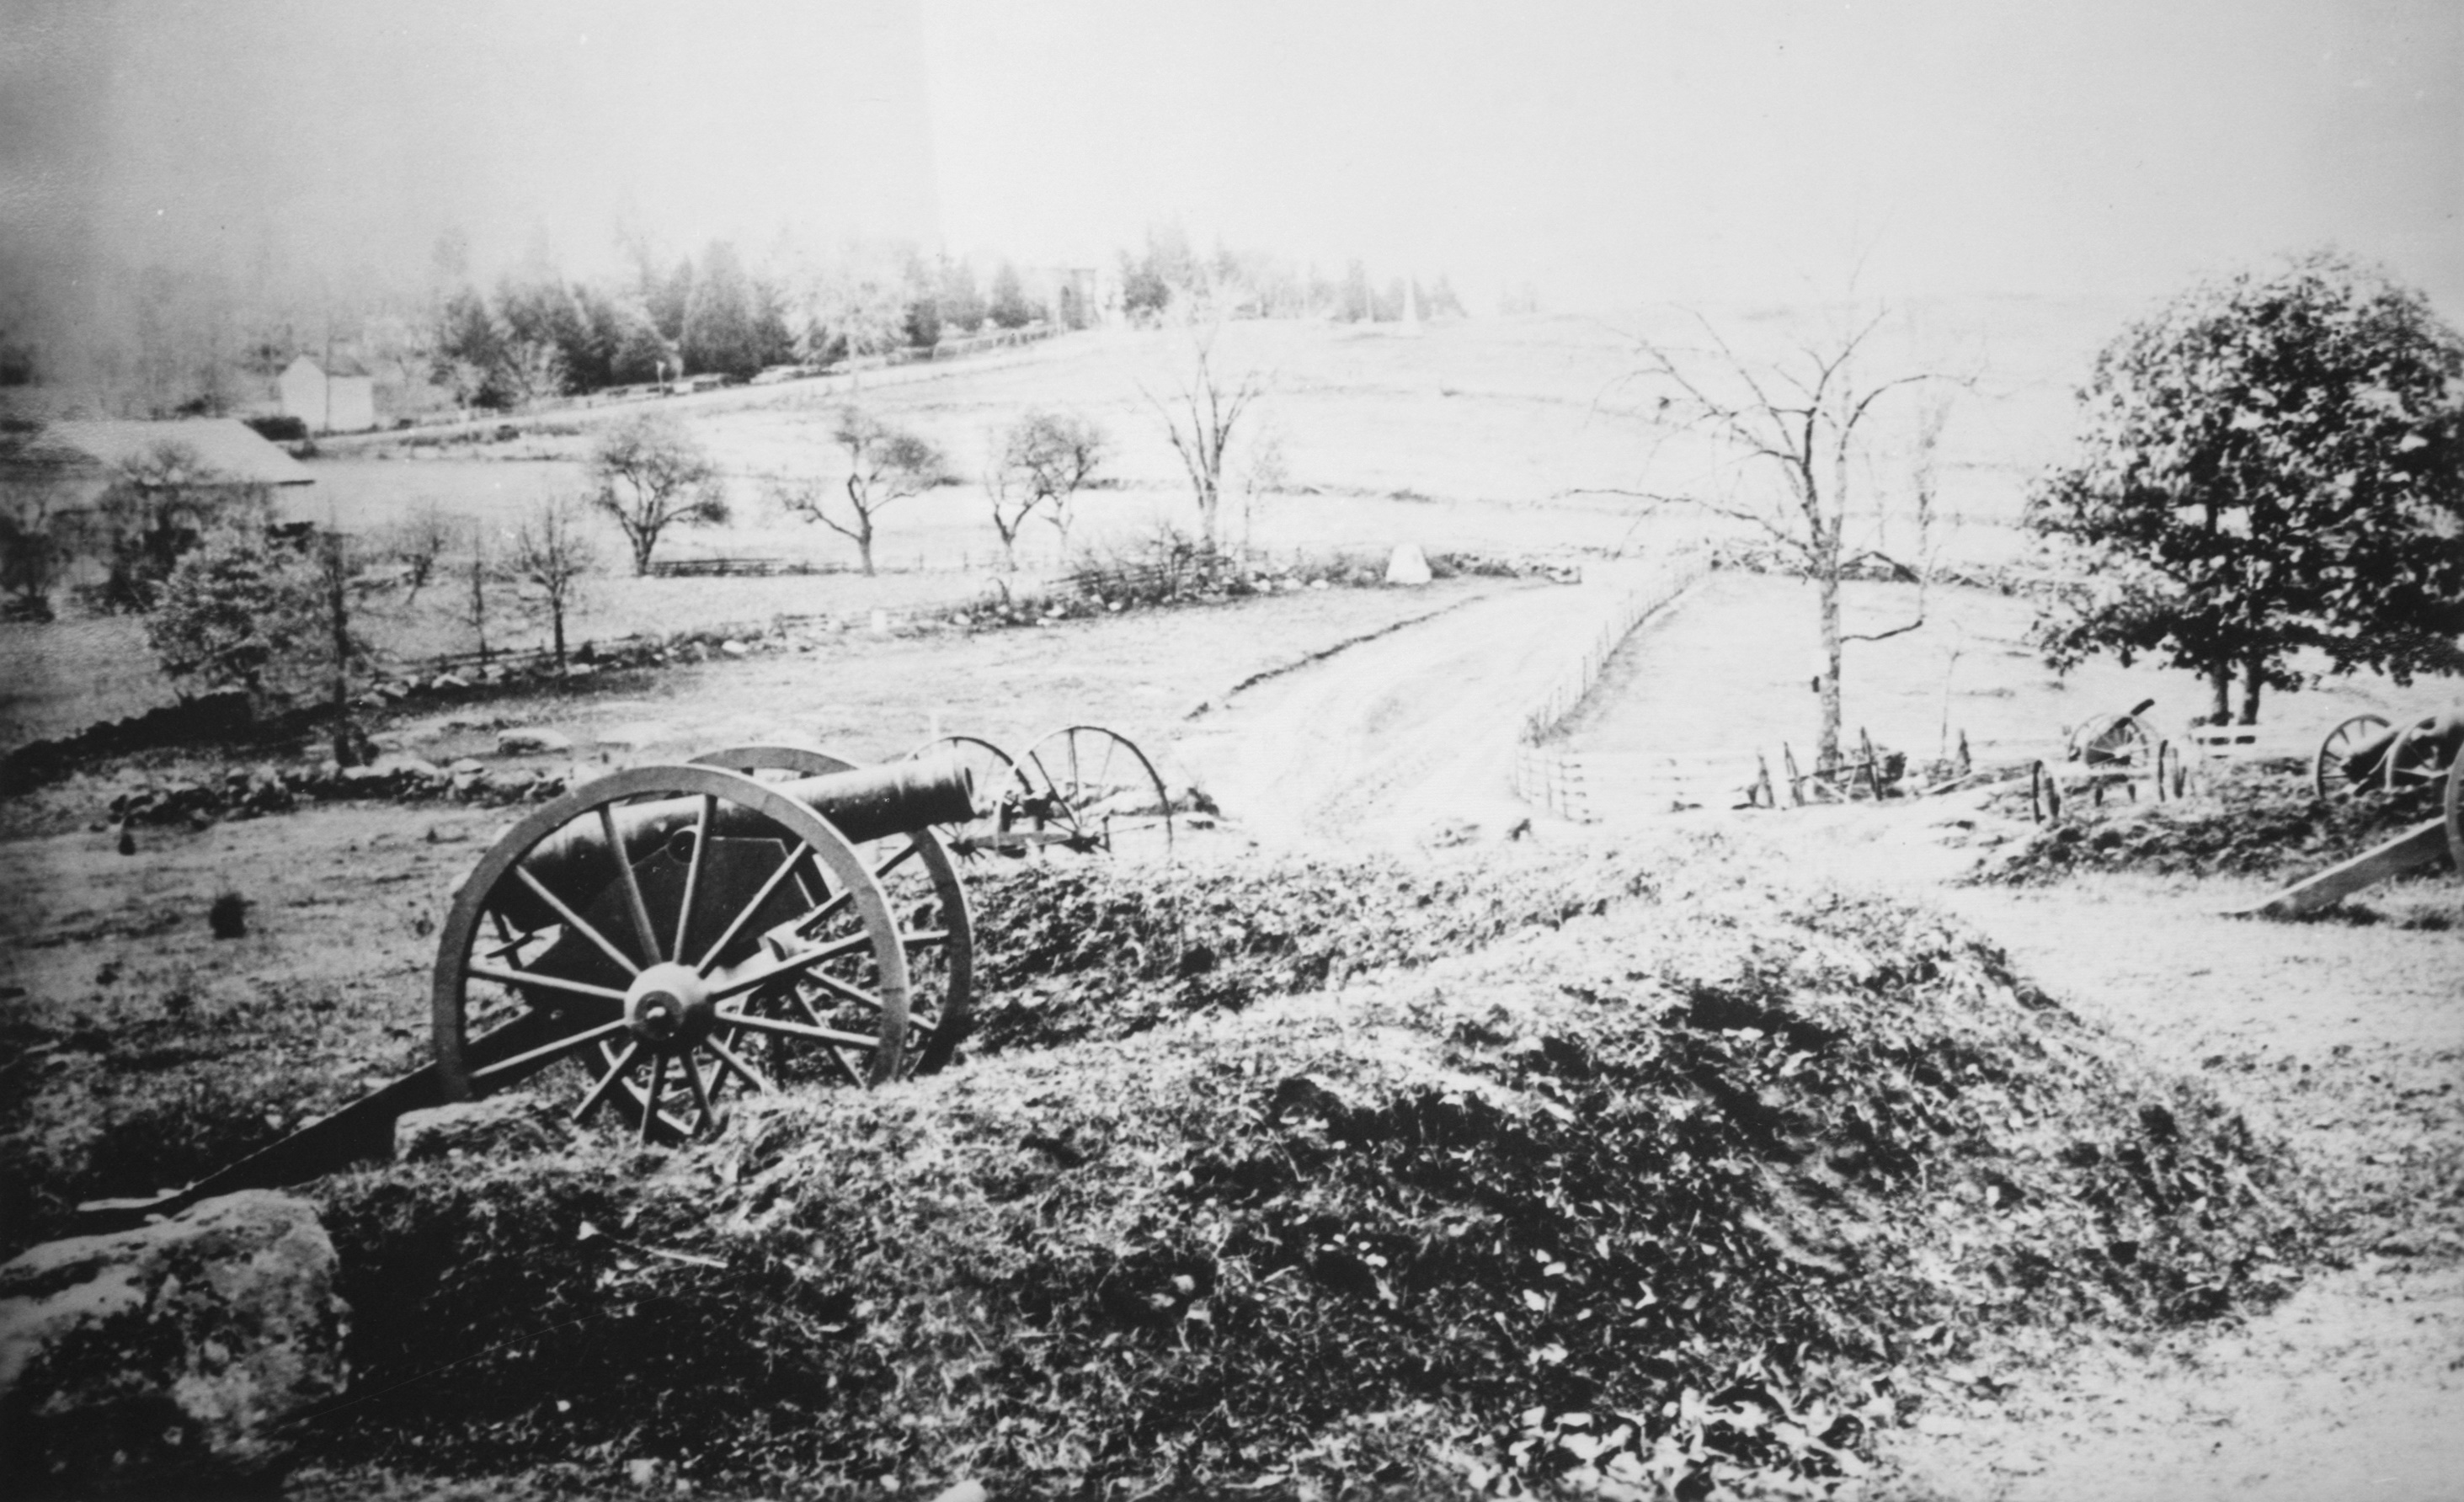 a history of the gettysburg battle Last updated: may 2, 2018 see article history battle of gettysburg, (july 1–3,  1863), major engagement in the american civil war, fought 35 miles (56 km).